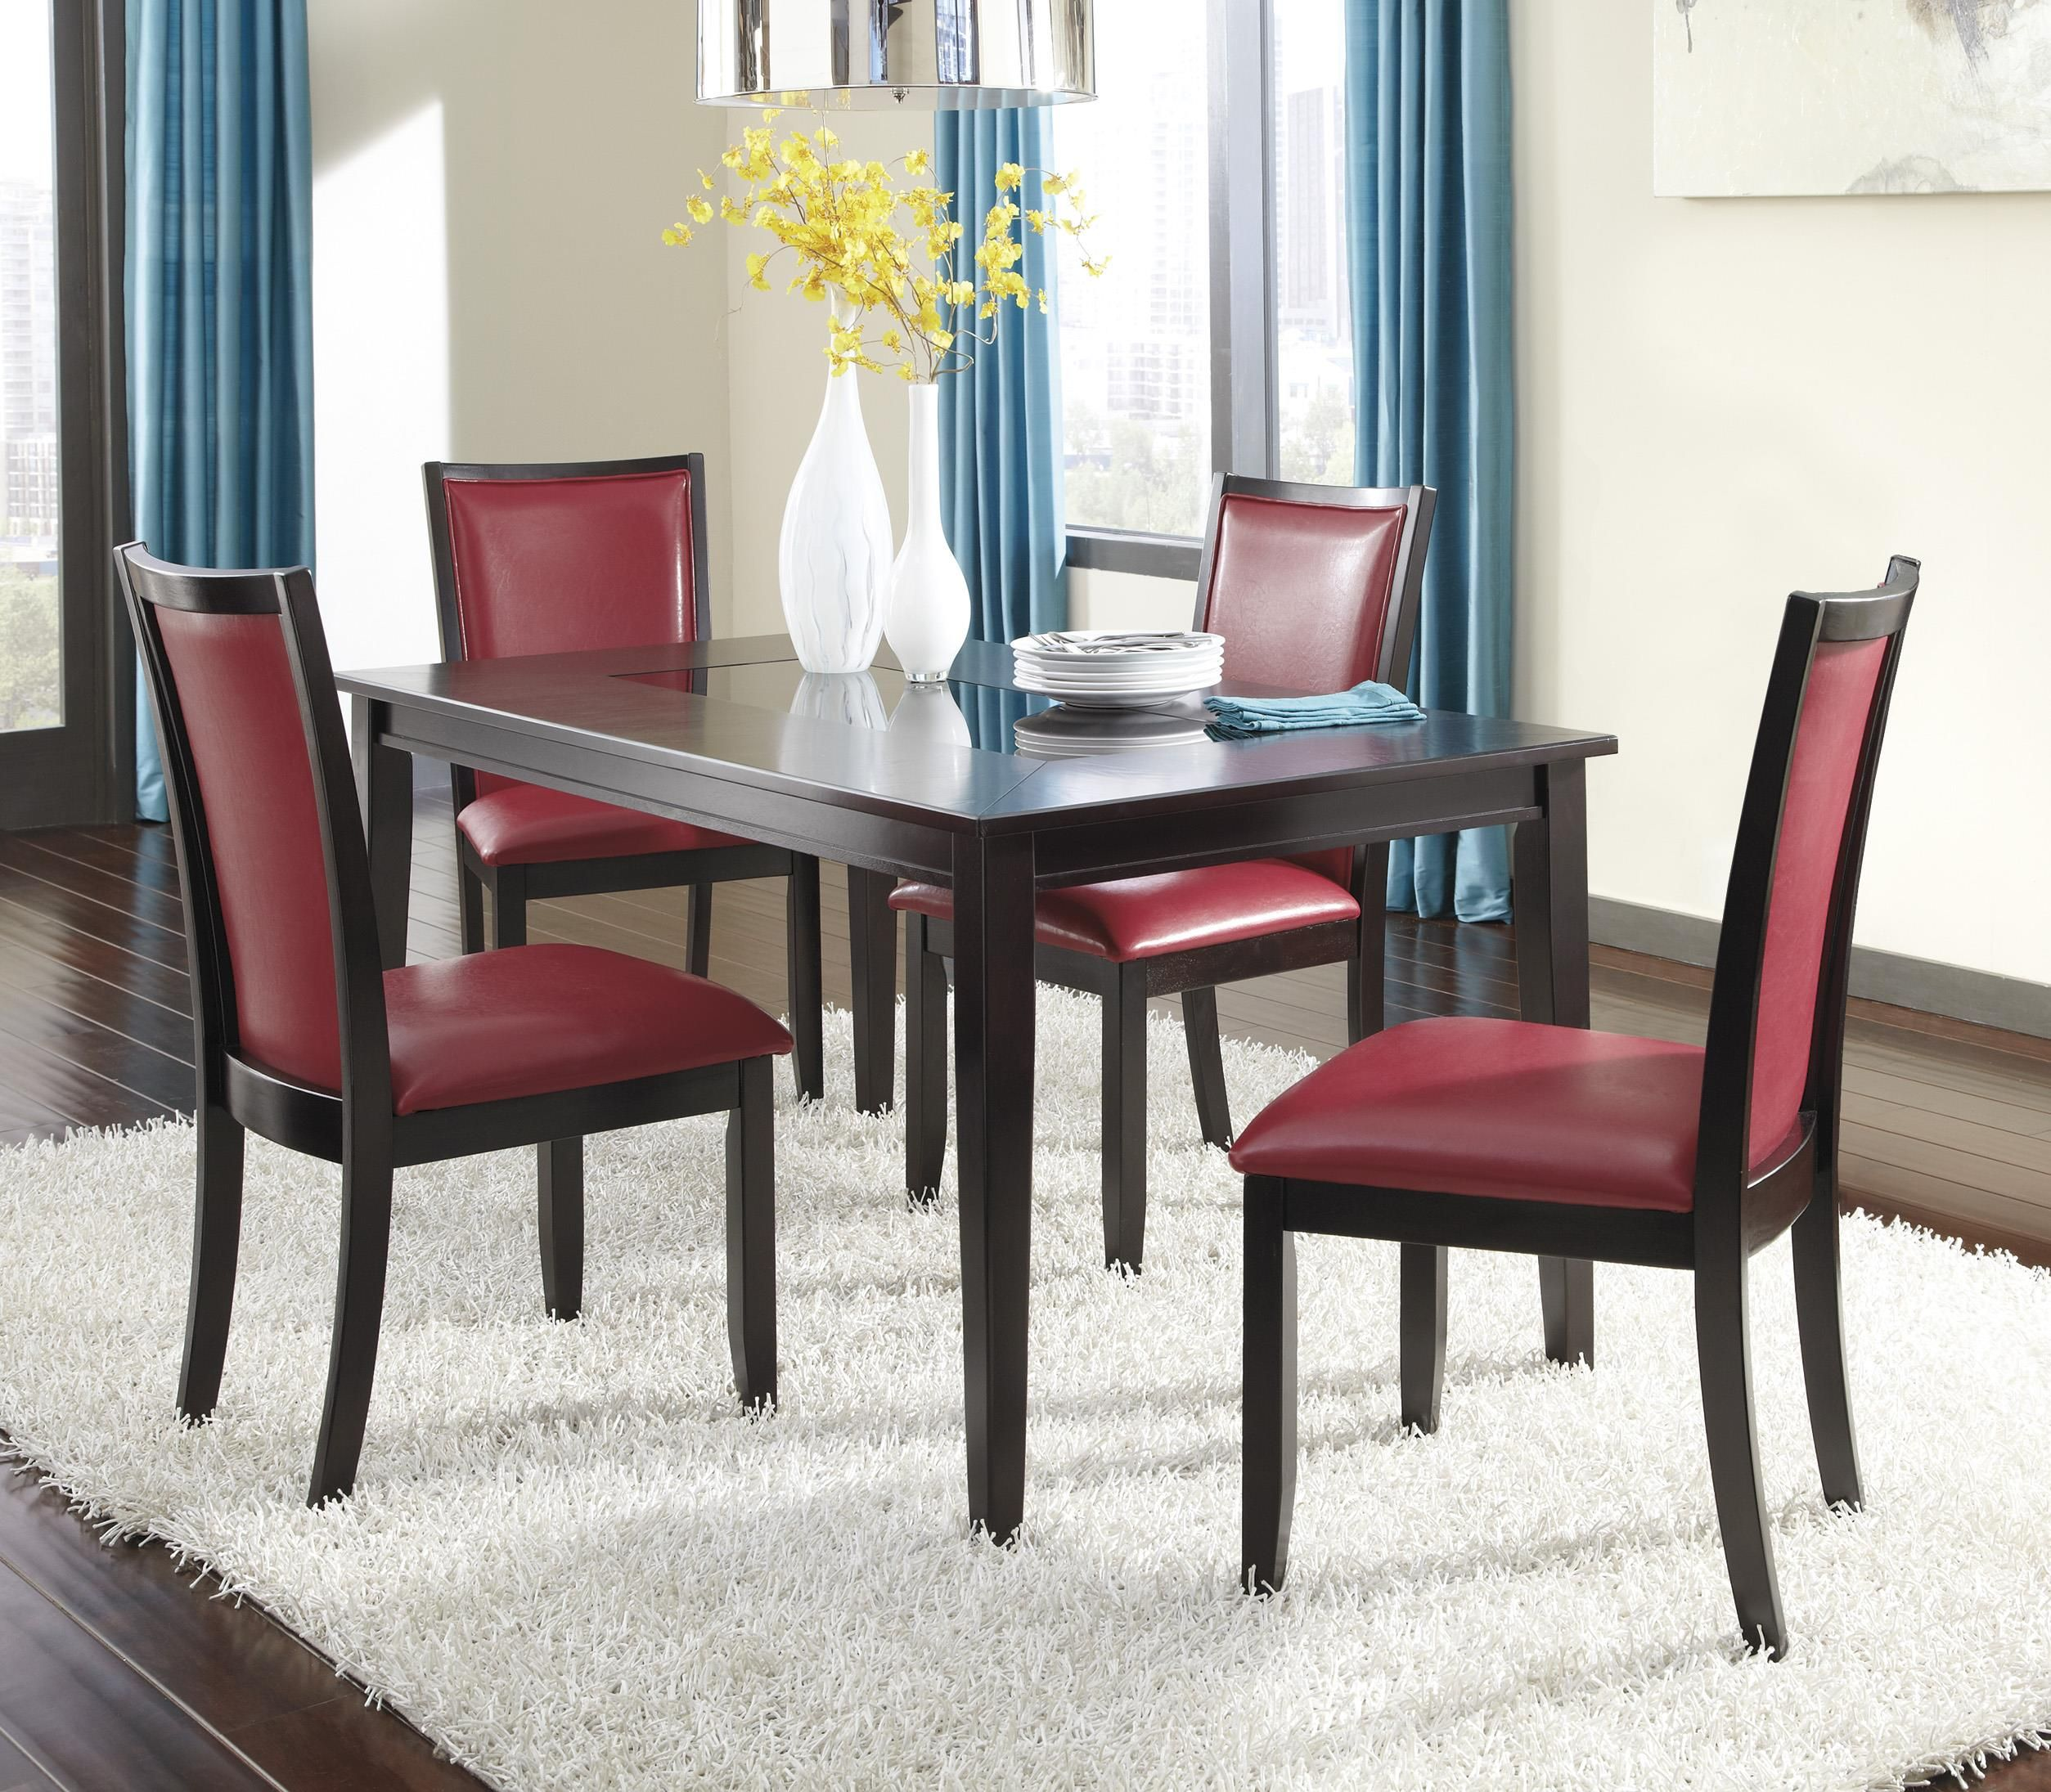 Trishelle 5 Piece Rectangular Dining Table Set With Red Chairs By Ashley Furnitu Rectangular Dining Room Table Dining Room Furniture Sets Dining Room Table Set